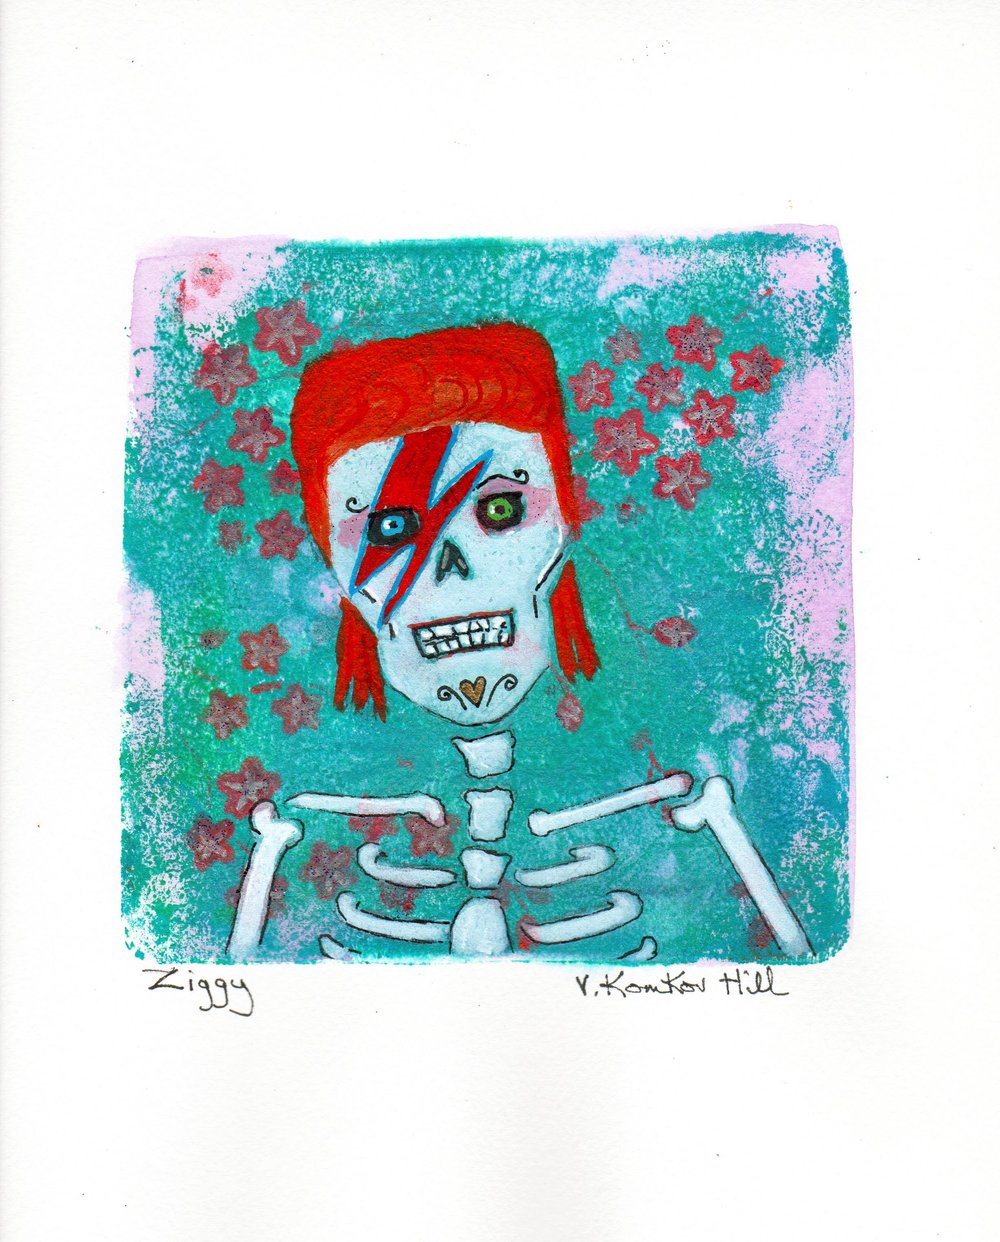 Ziggy-from Day of the Dead Rock Star series. 2018